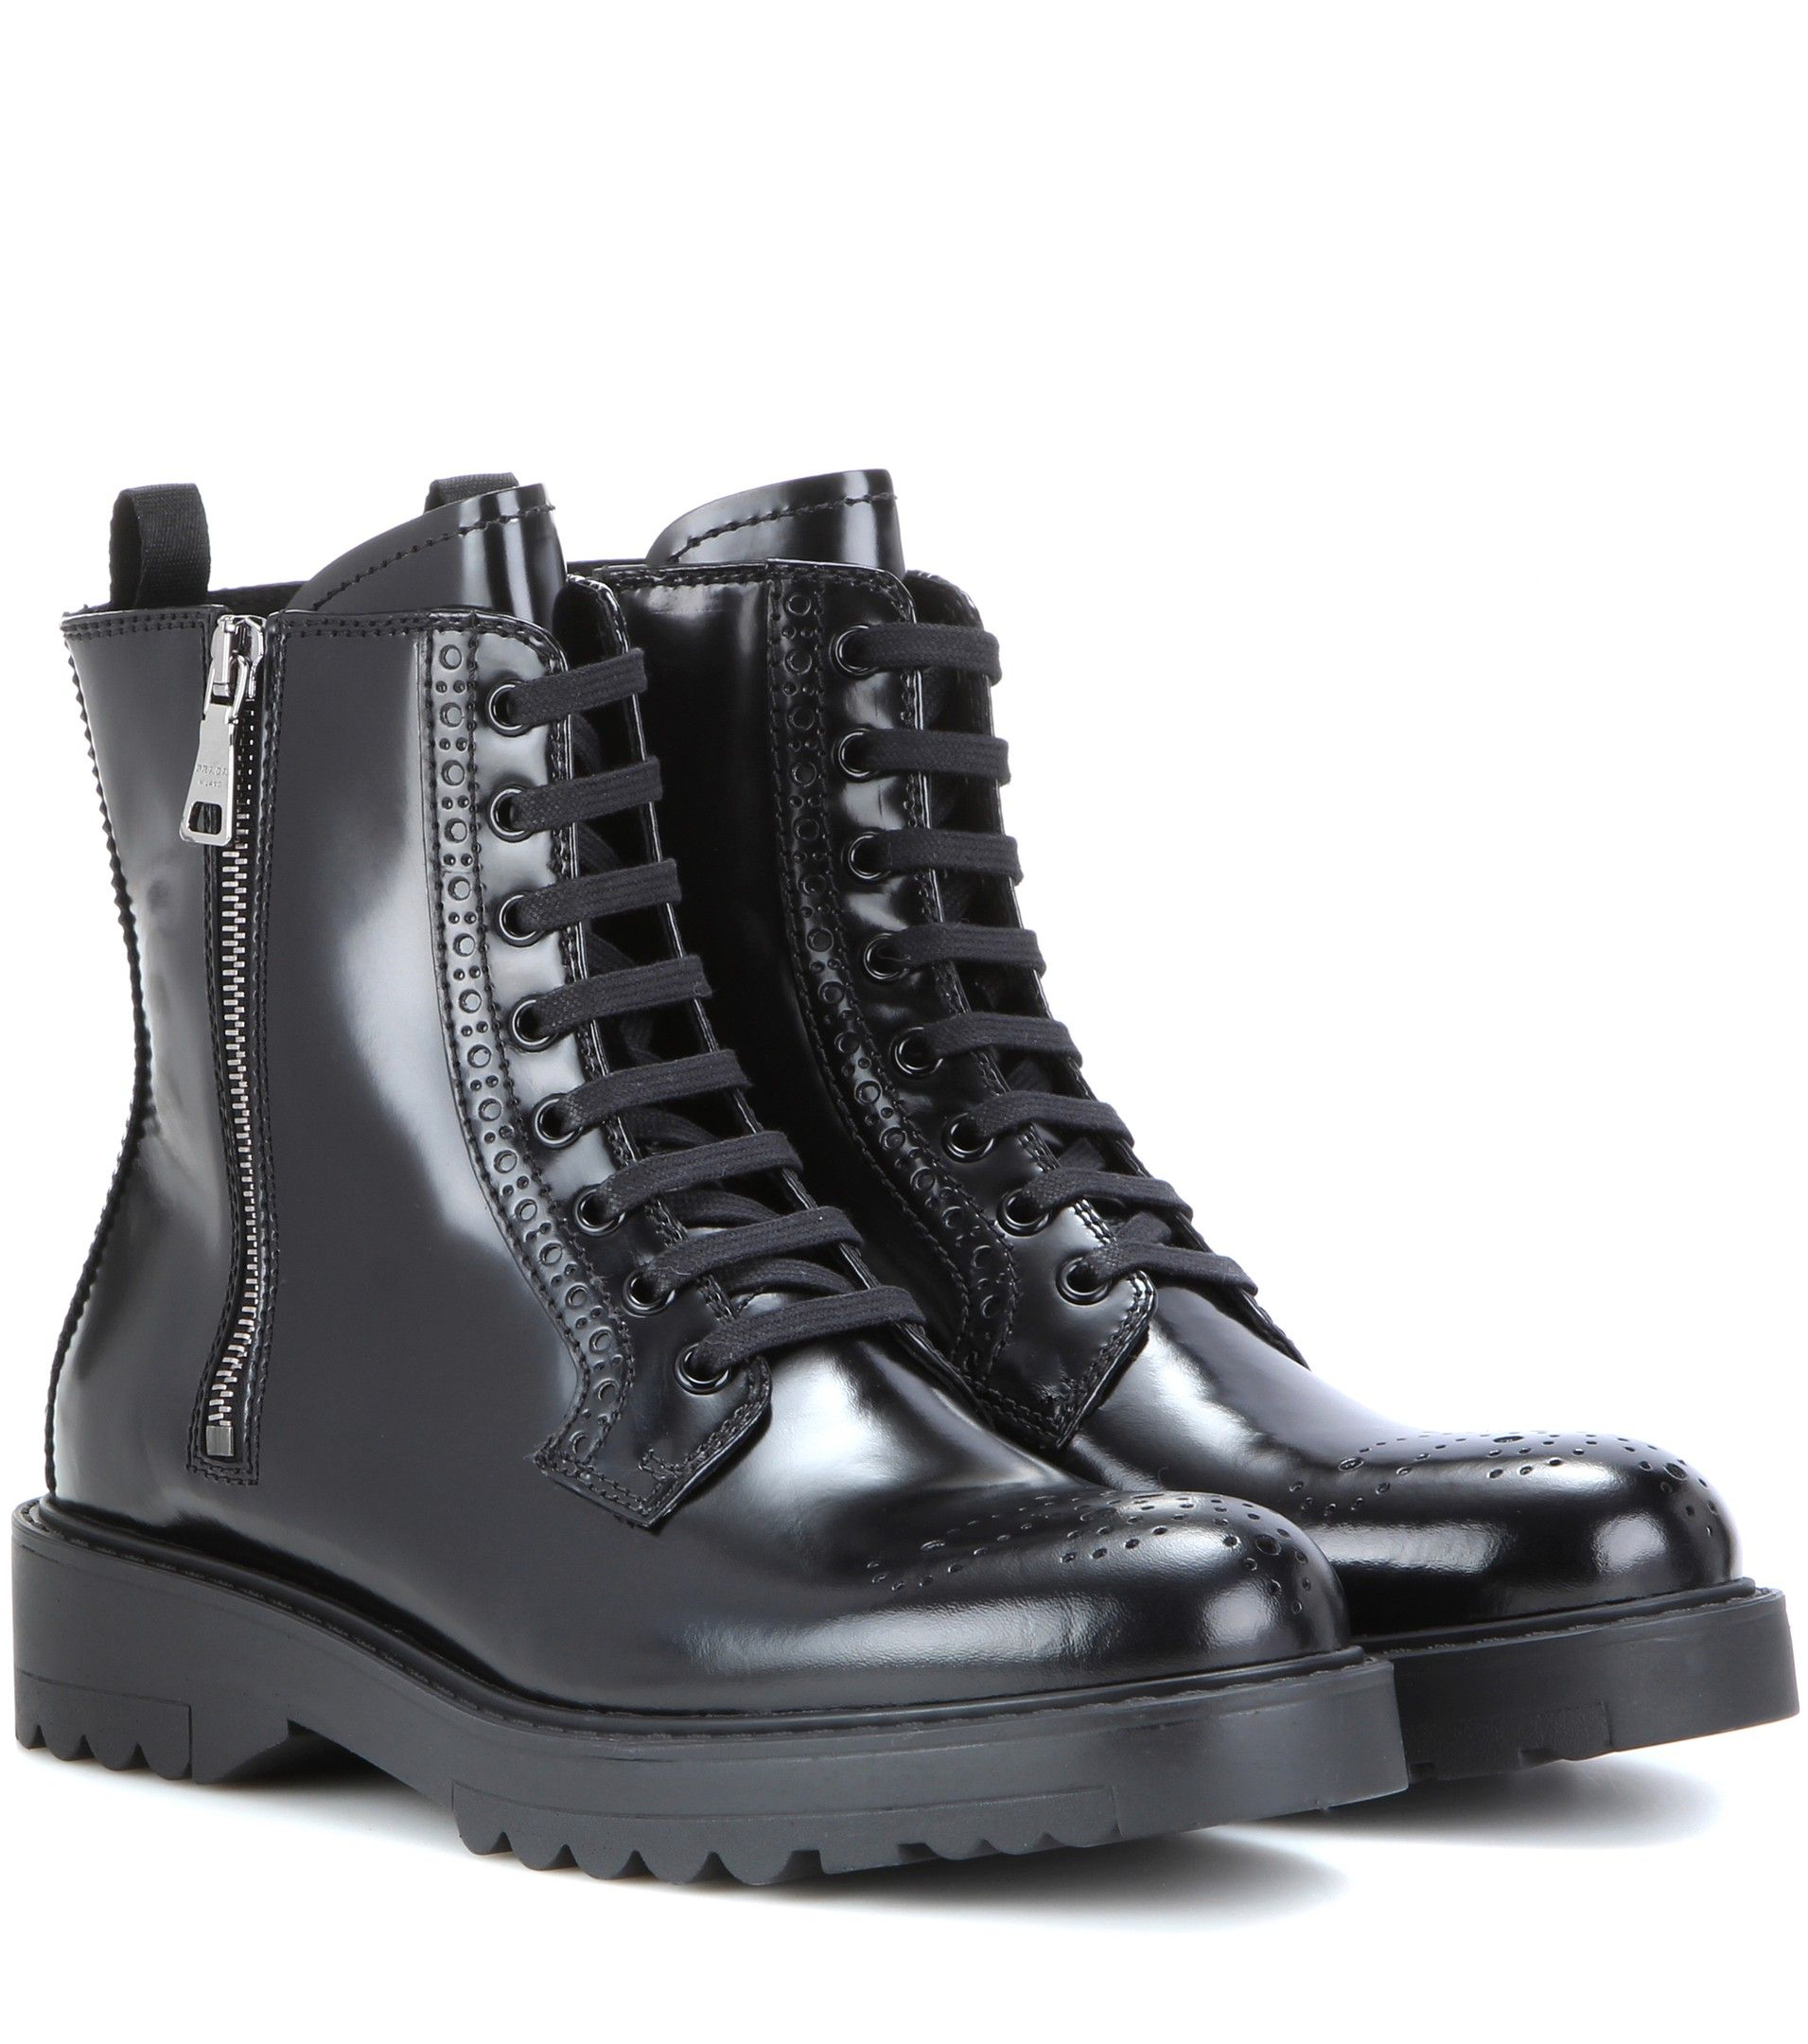 0ed398231e8 Prada Lace-up leather ankle boots Black $129.00 | boots in 2019 ...